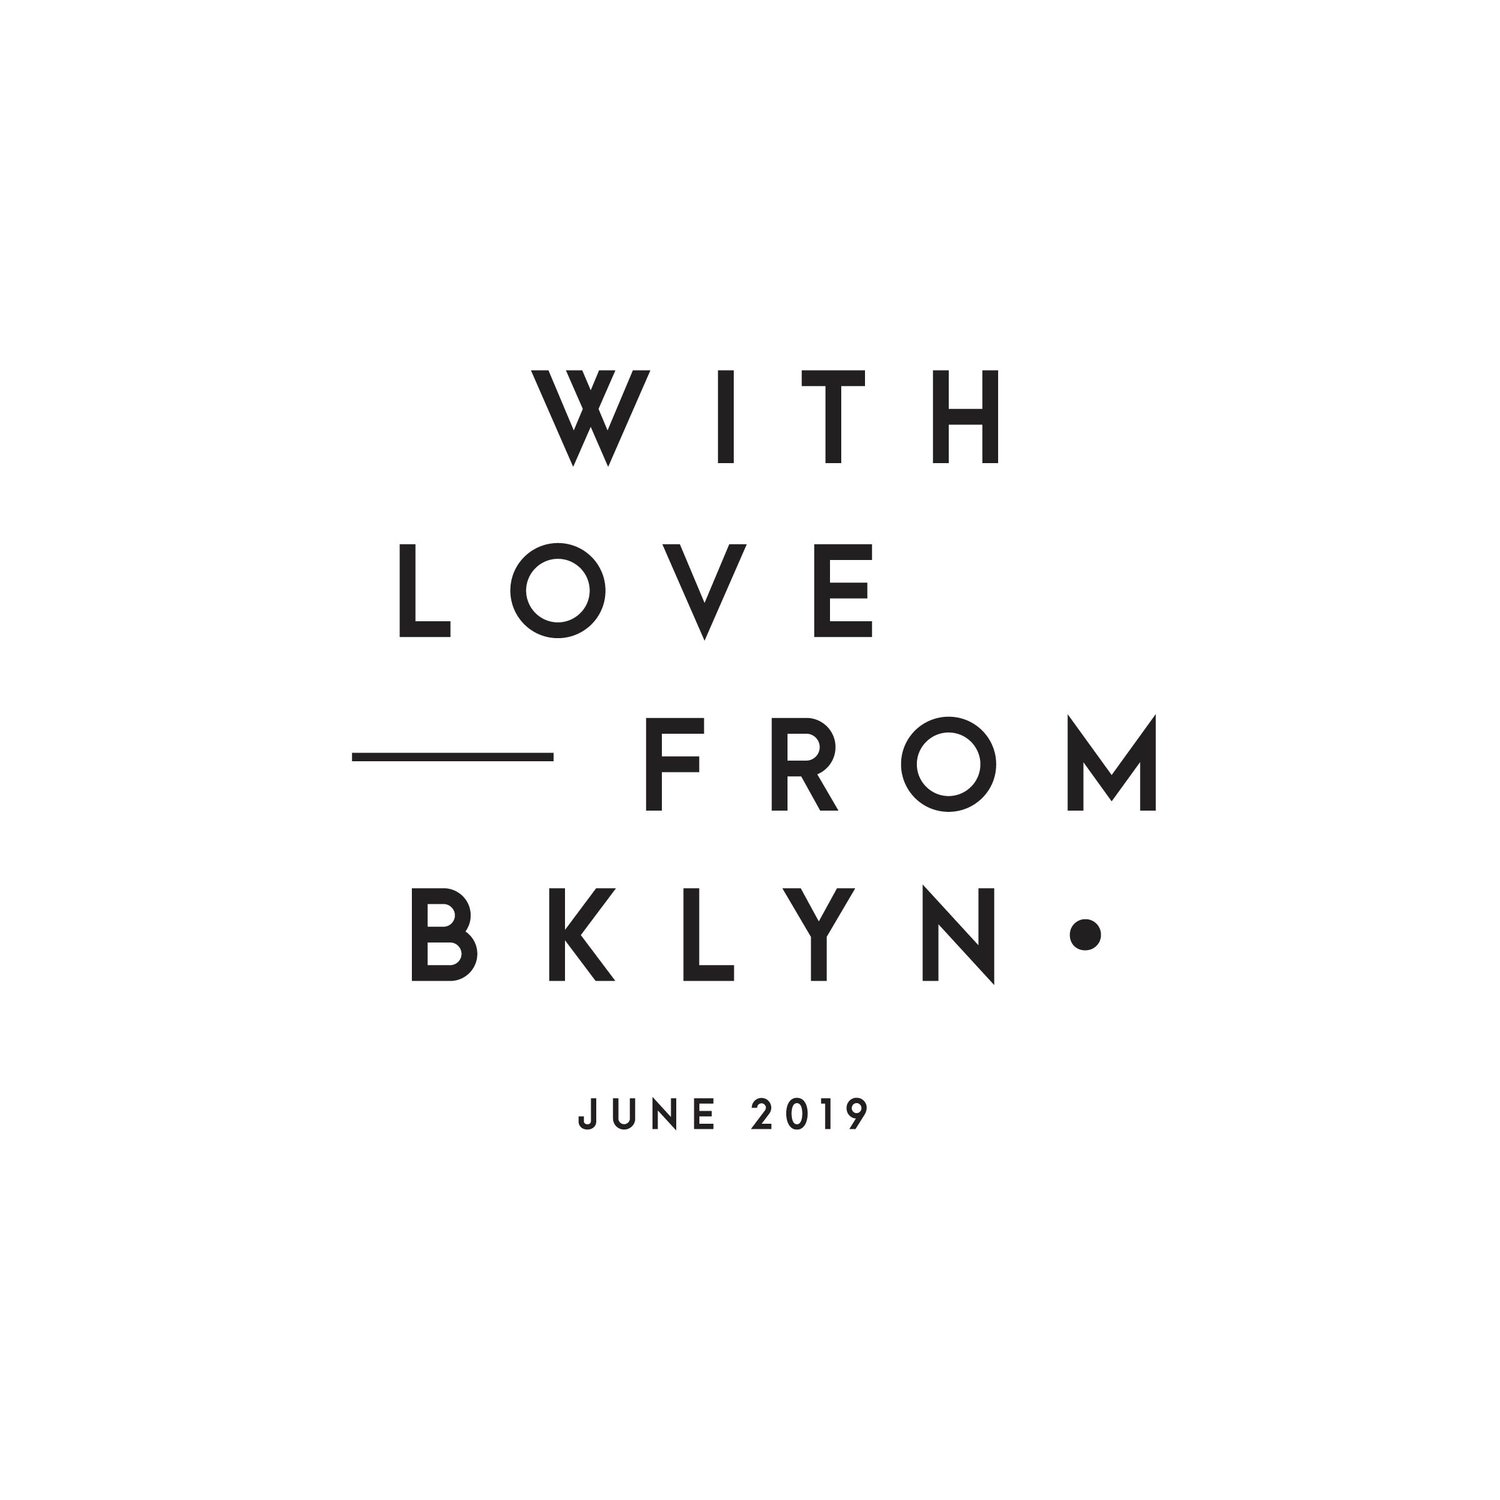 With Love, from BKLYN